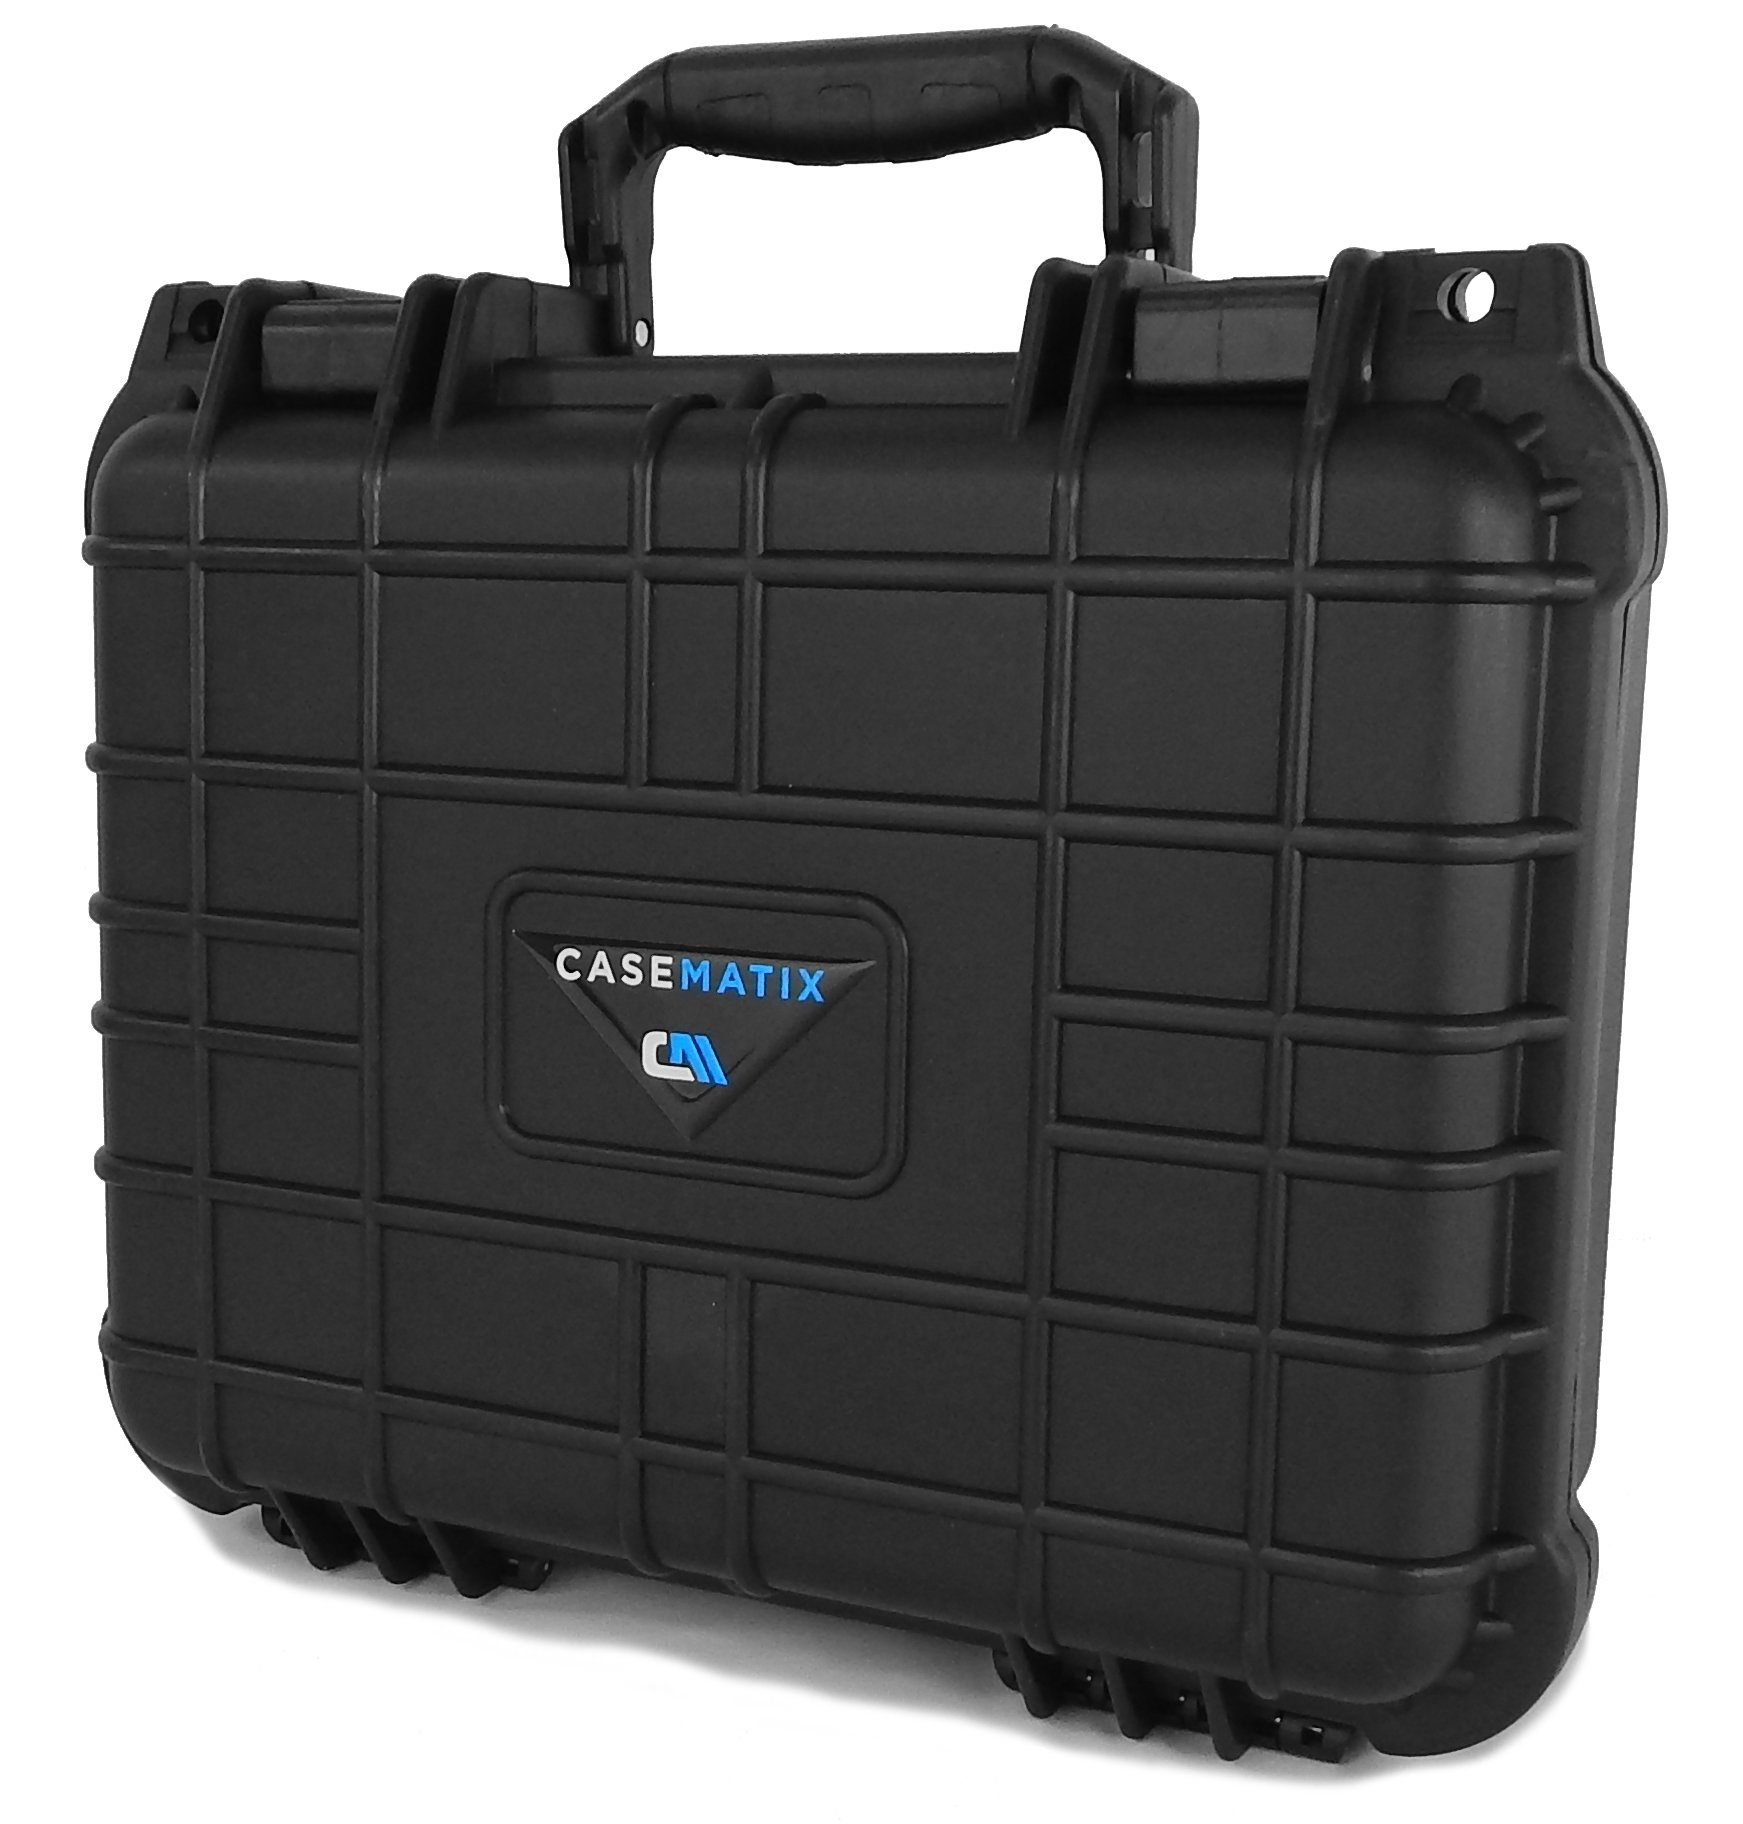 CASEMATIX Waterproof Customizable Projector Carry Case for TENKER Q5 Projector 1500 LUX LCD, Remote Control, Cables and Compact Accessories by CASEMATIX